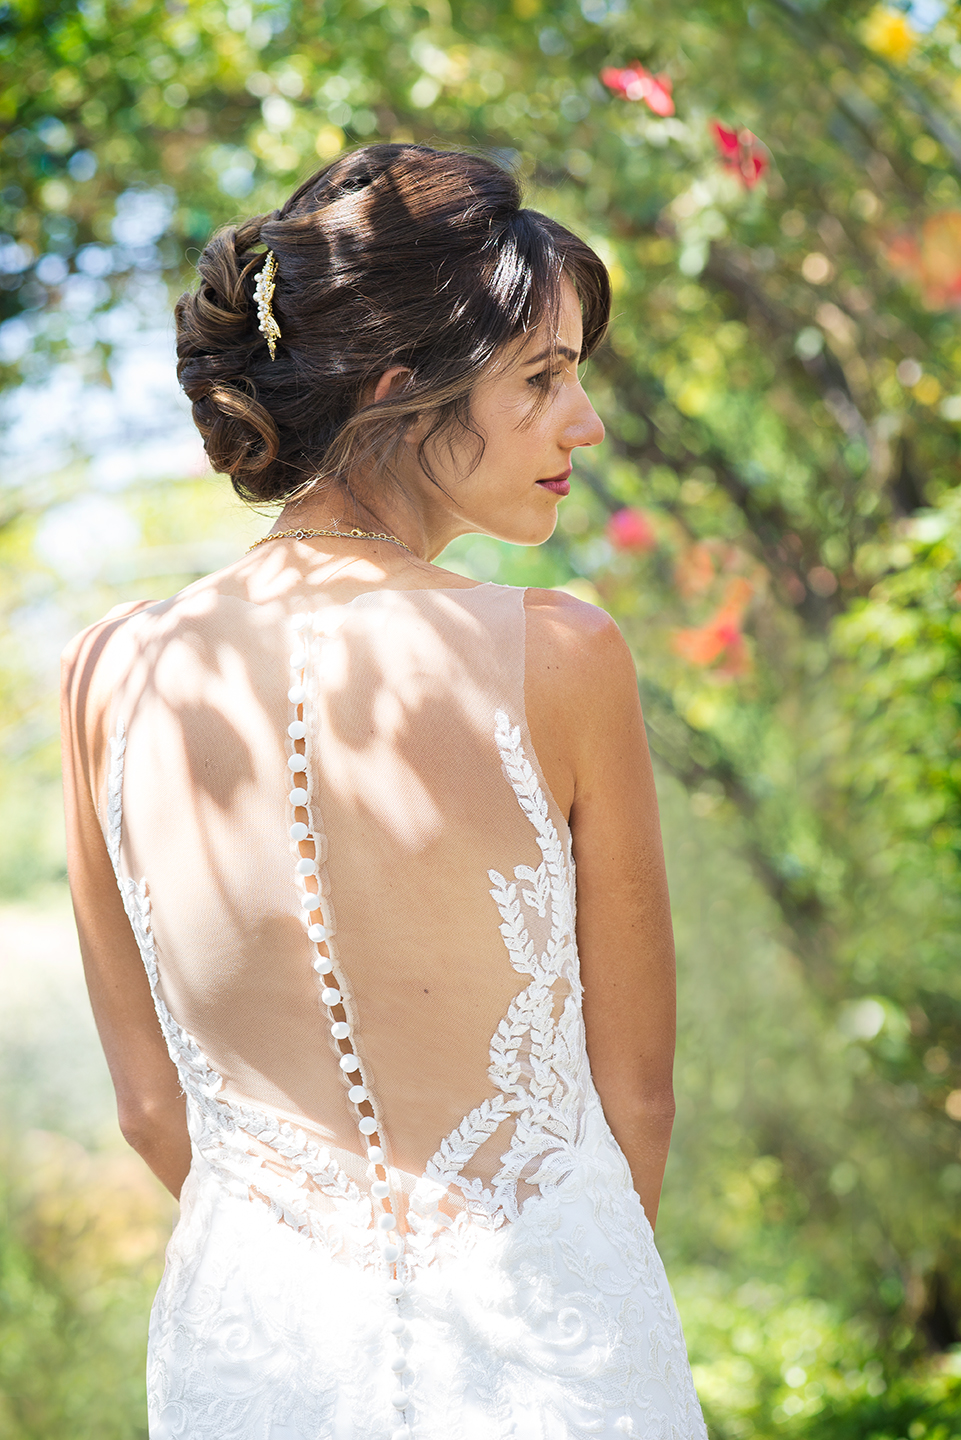 Okay, Dana - You are stunning XD!! I also loved the way the leaves made their own pattern on the back of her dress ~ mirroring the beautiful lace :) .